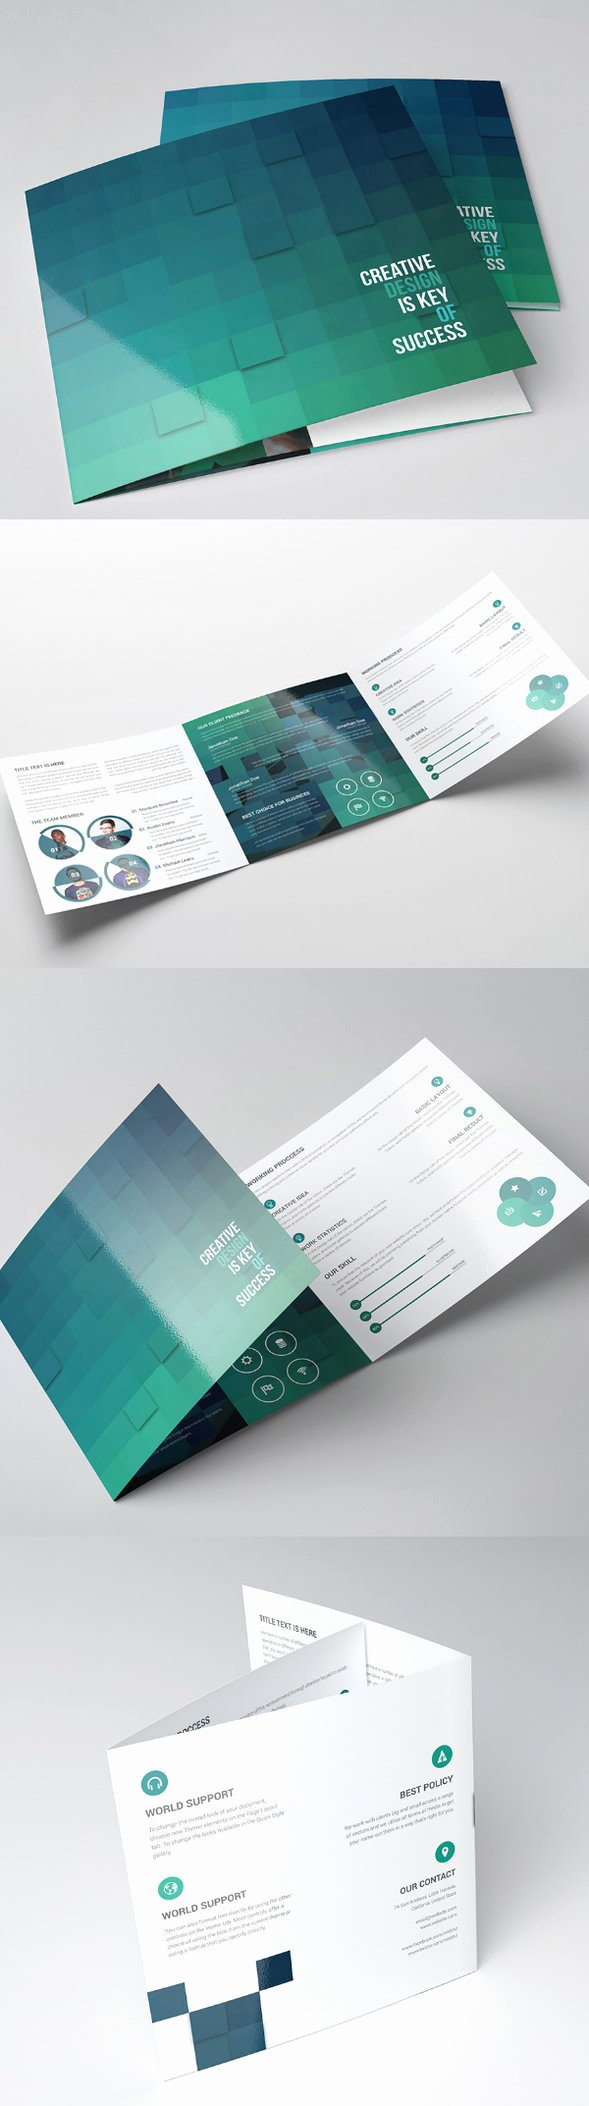 Square Trifold Brochure Template Unique 45 Fantastic Brochure Templates to Impress Your Clients